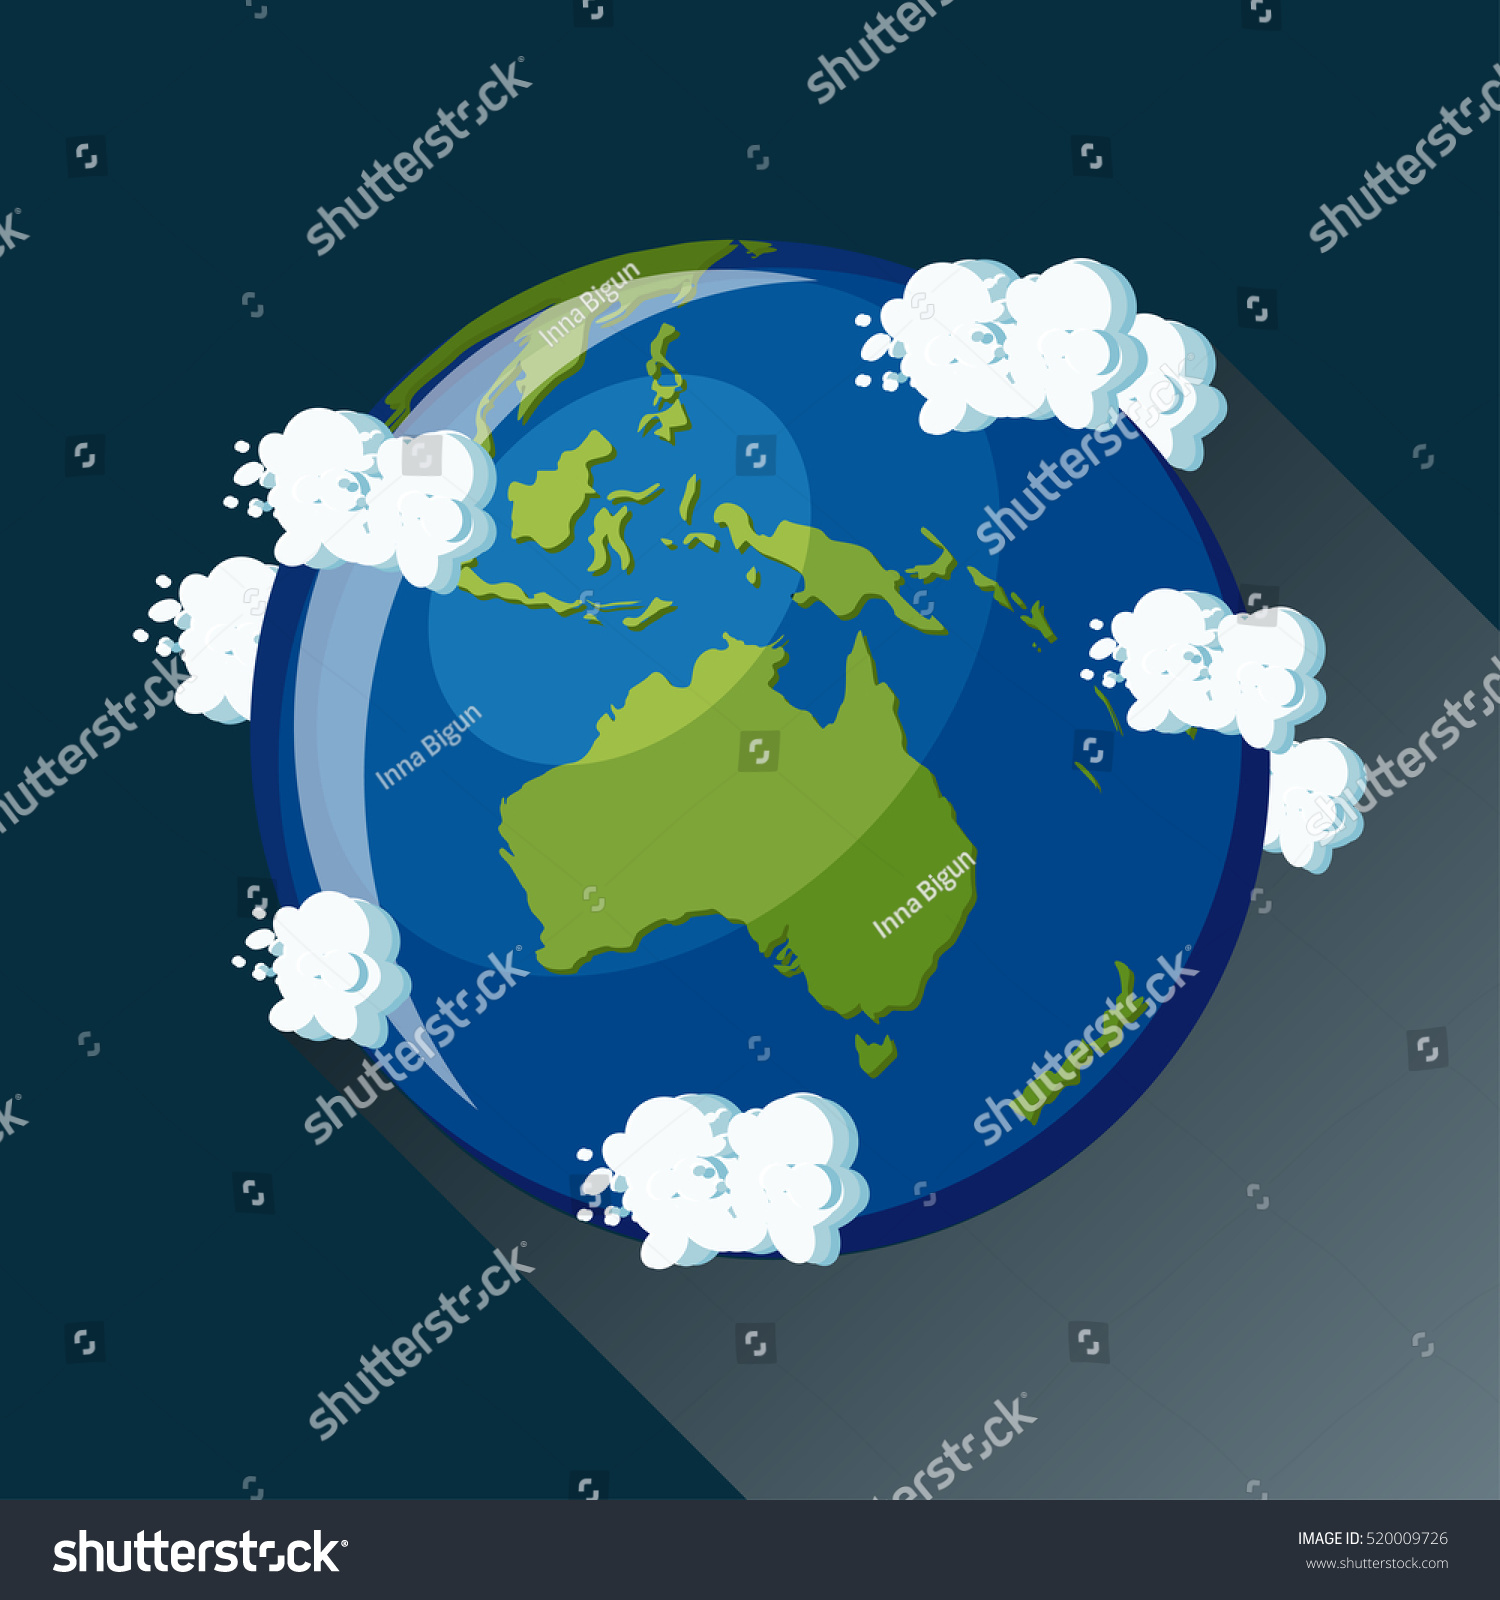 Australia map on planet earth view vectores en stock 520009726 australia map on planet earth view from space australia globe icon planet earth gumiabroncs Image collections